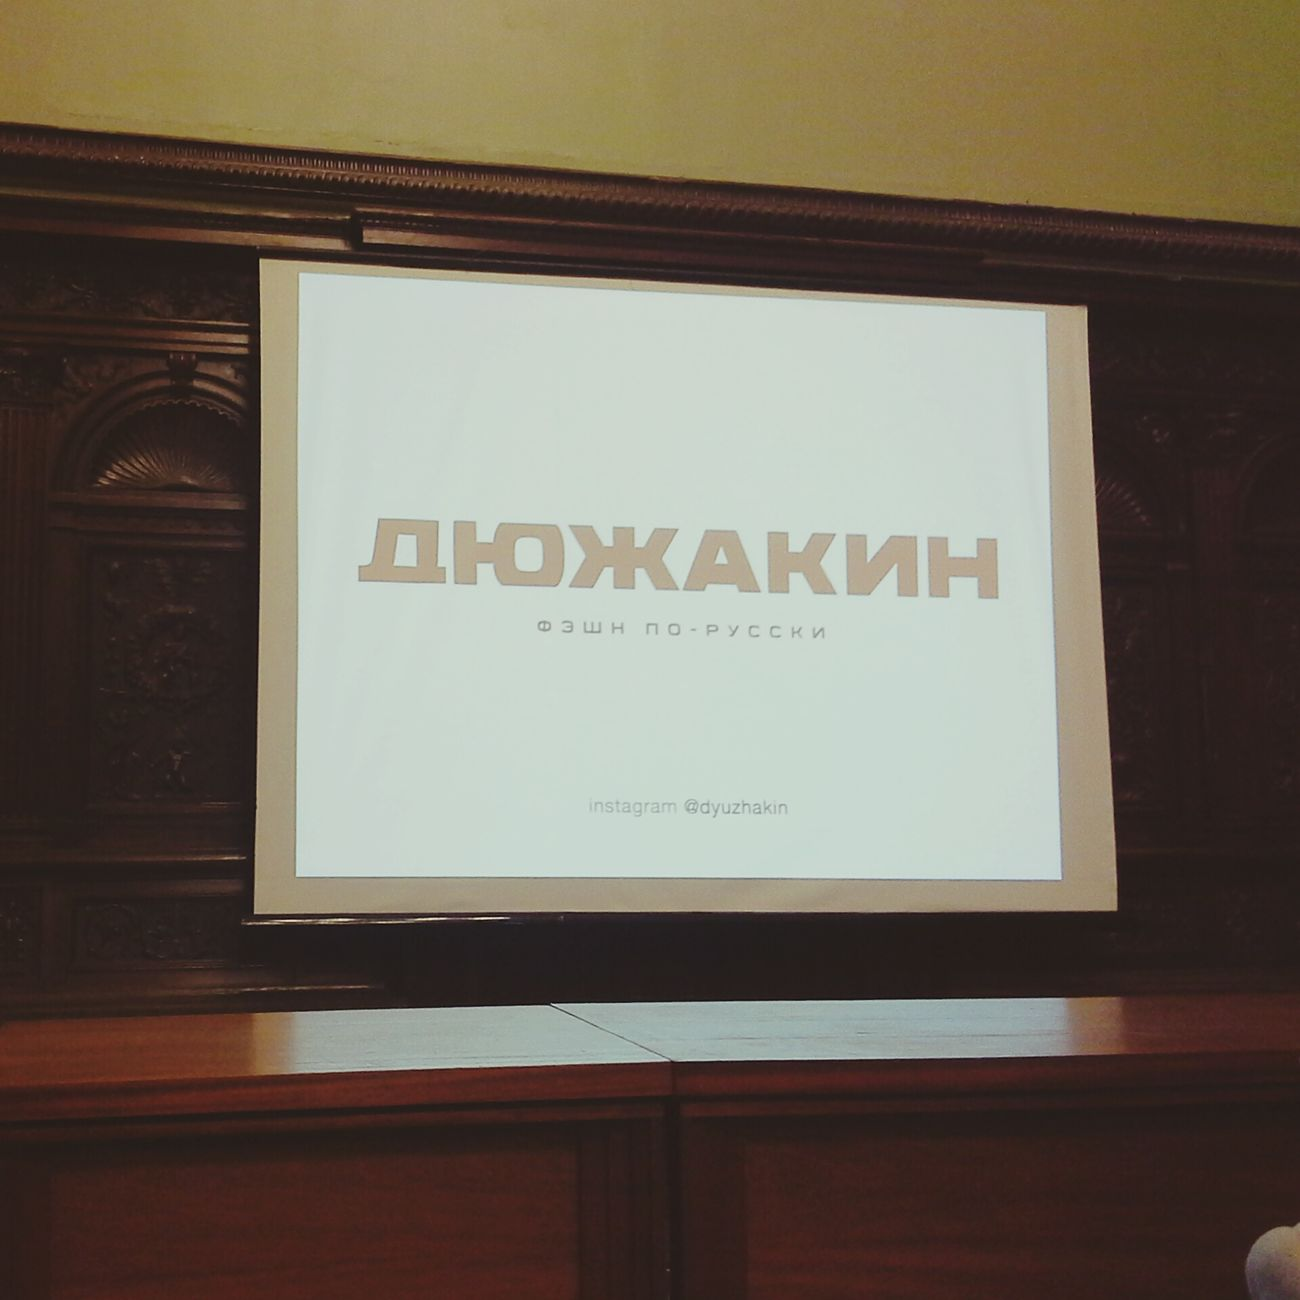 Lecture Lecturetime Photographer Interesting Places University Saint-Petersburg